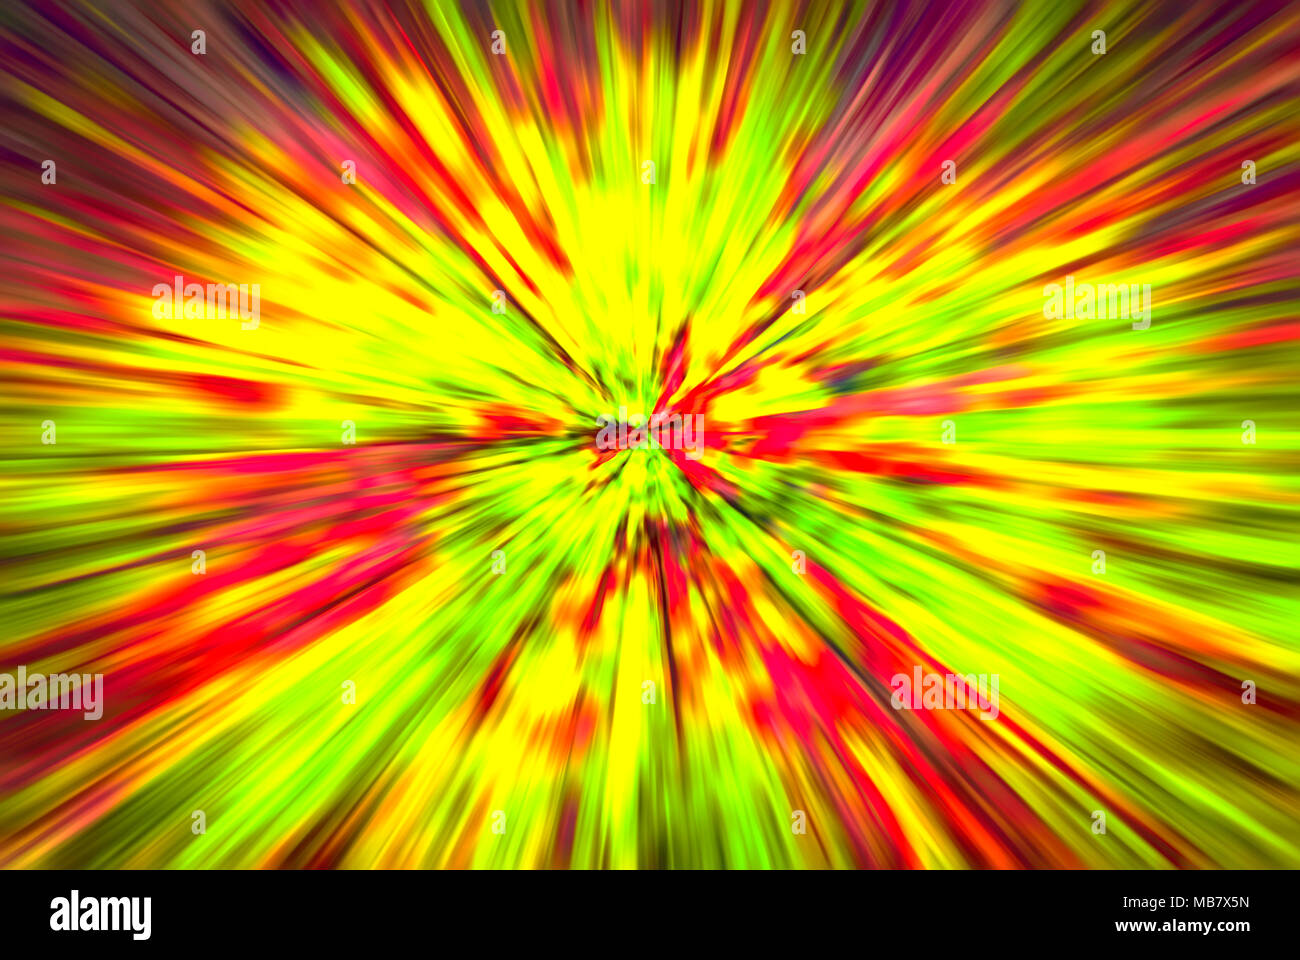 Psychedelic Hypnotic Unrealistic Abstract Speedy Yellow Green Red Background, motion blur effect, zoom motion blur. - Stock Image